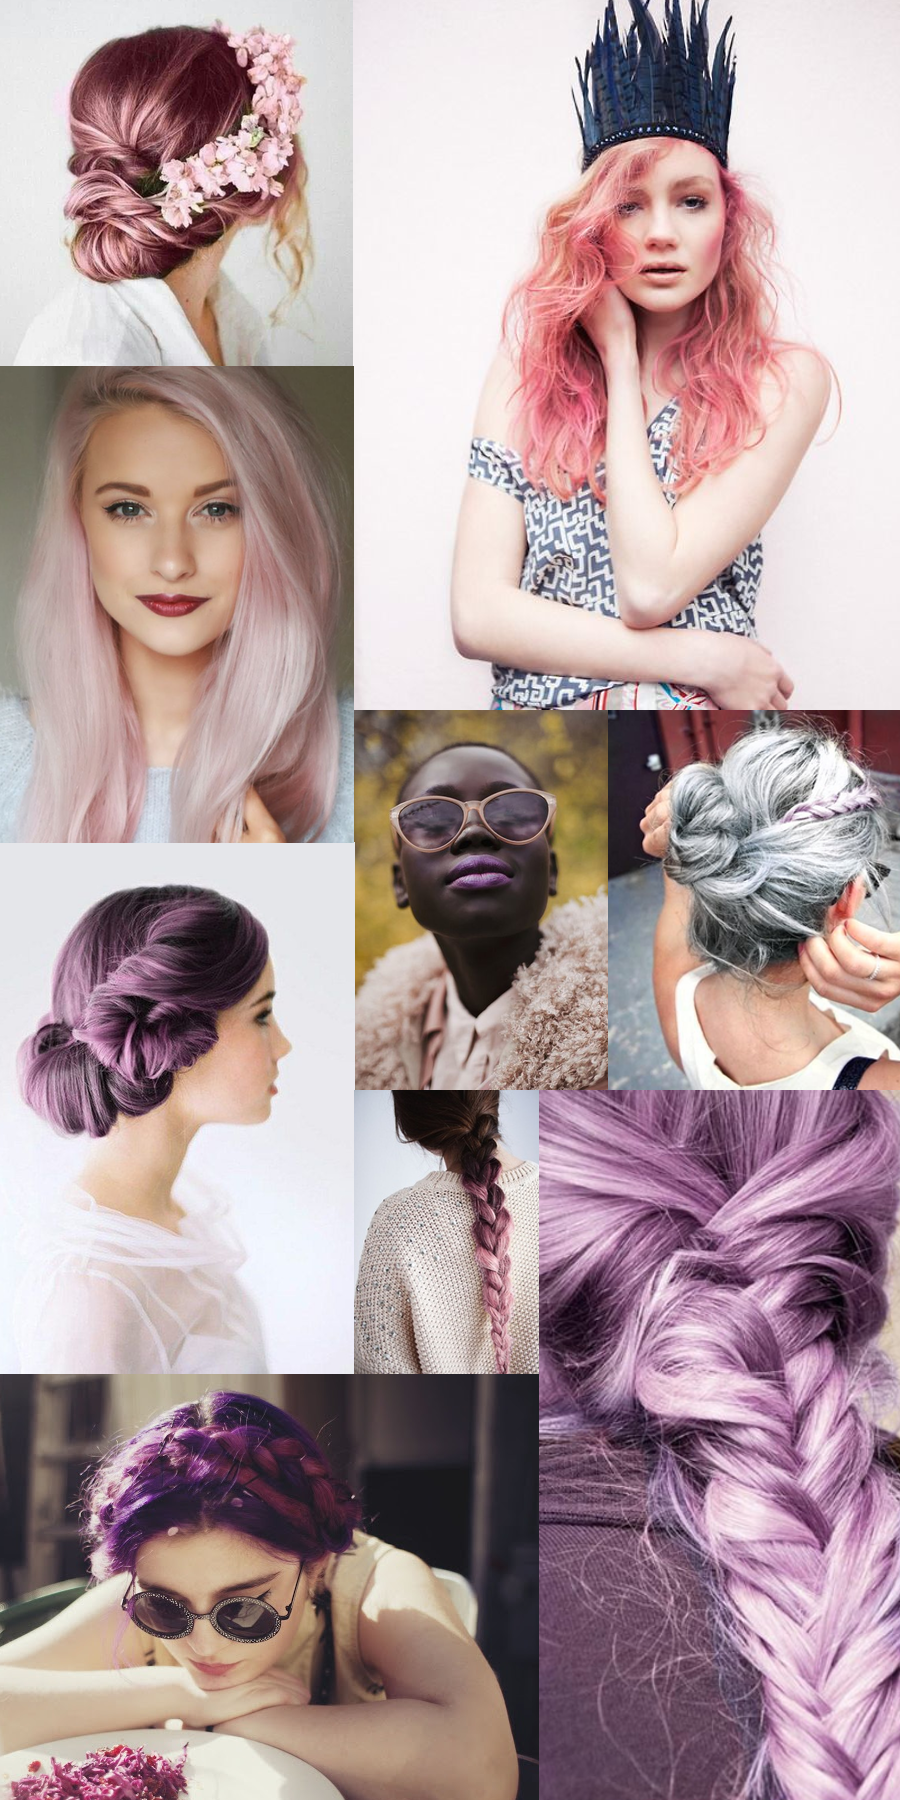 pink and purple and braids, oh my